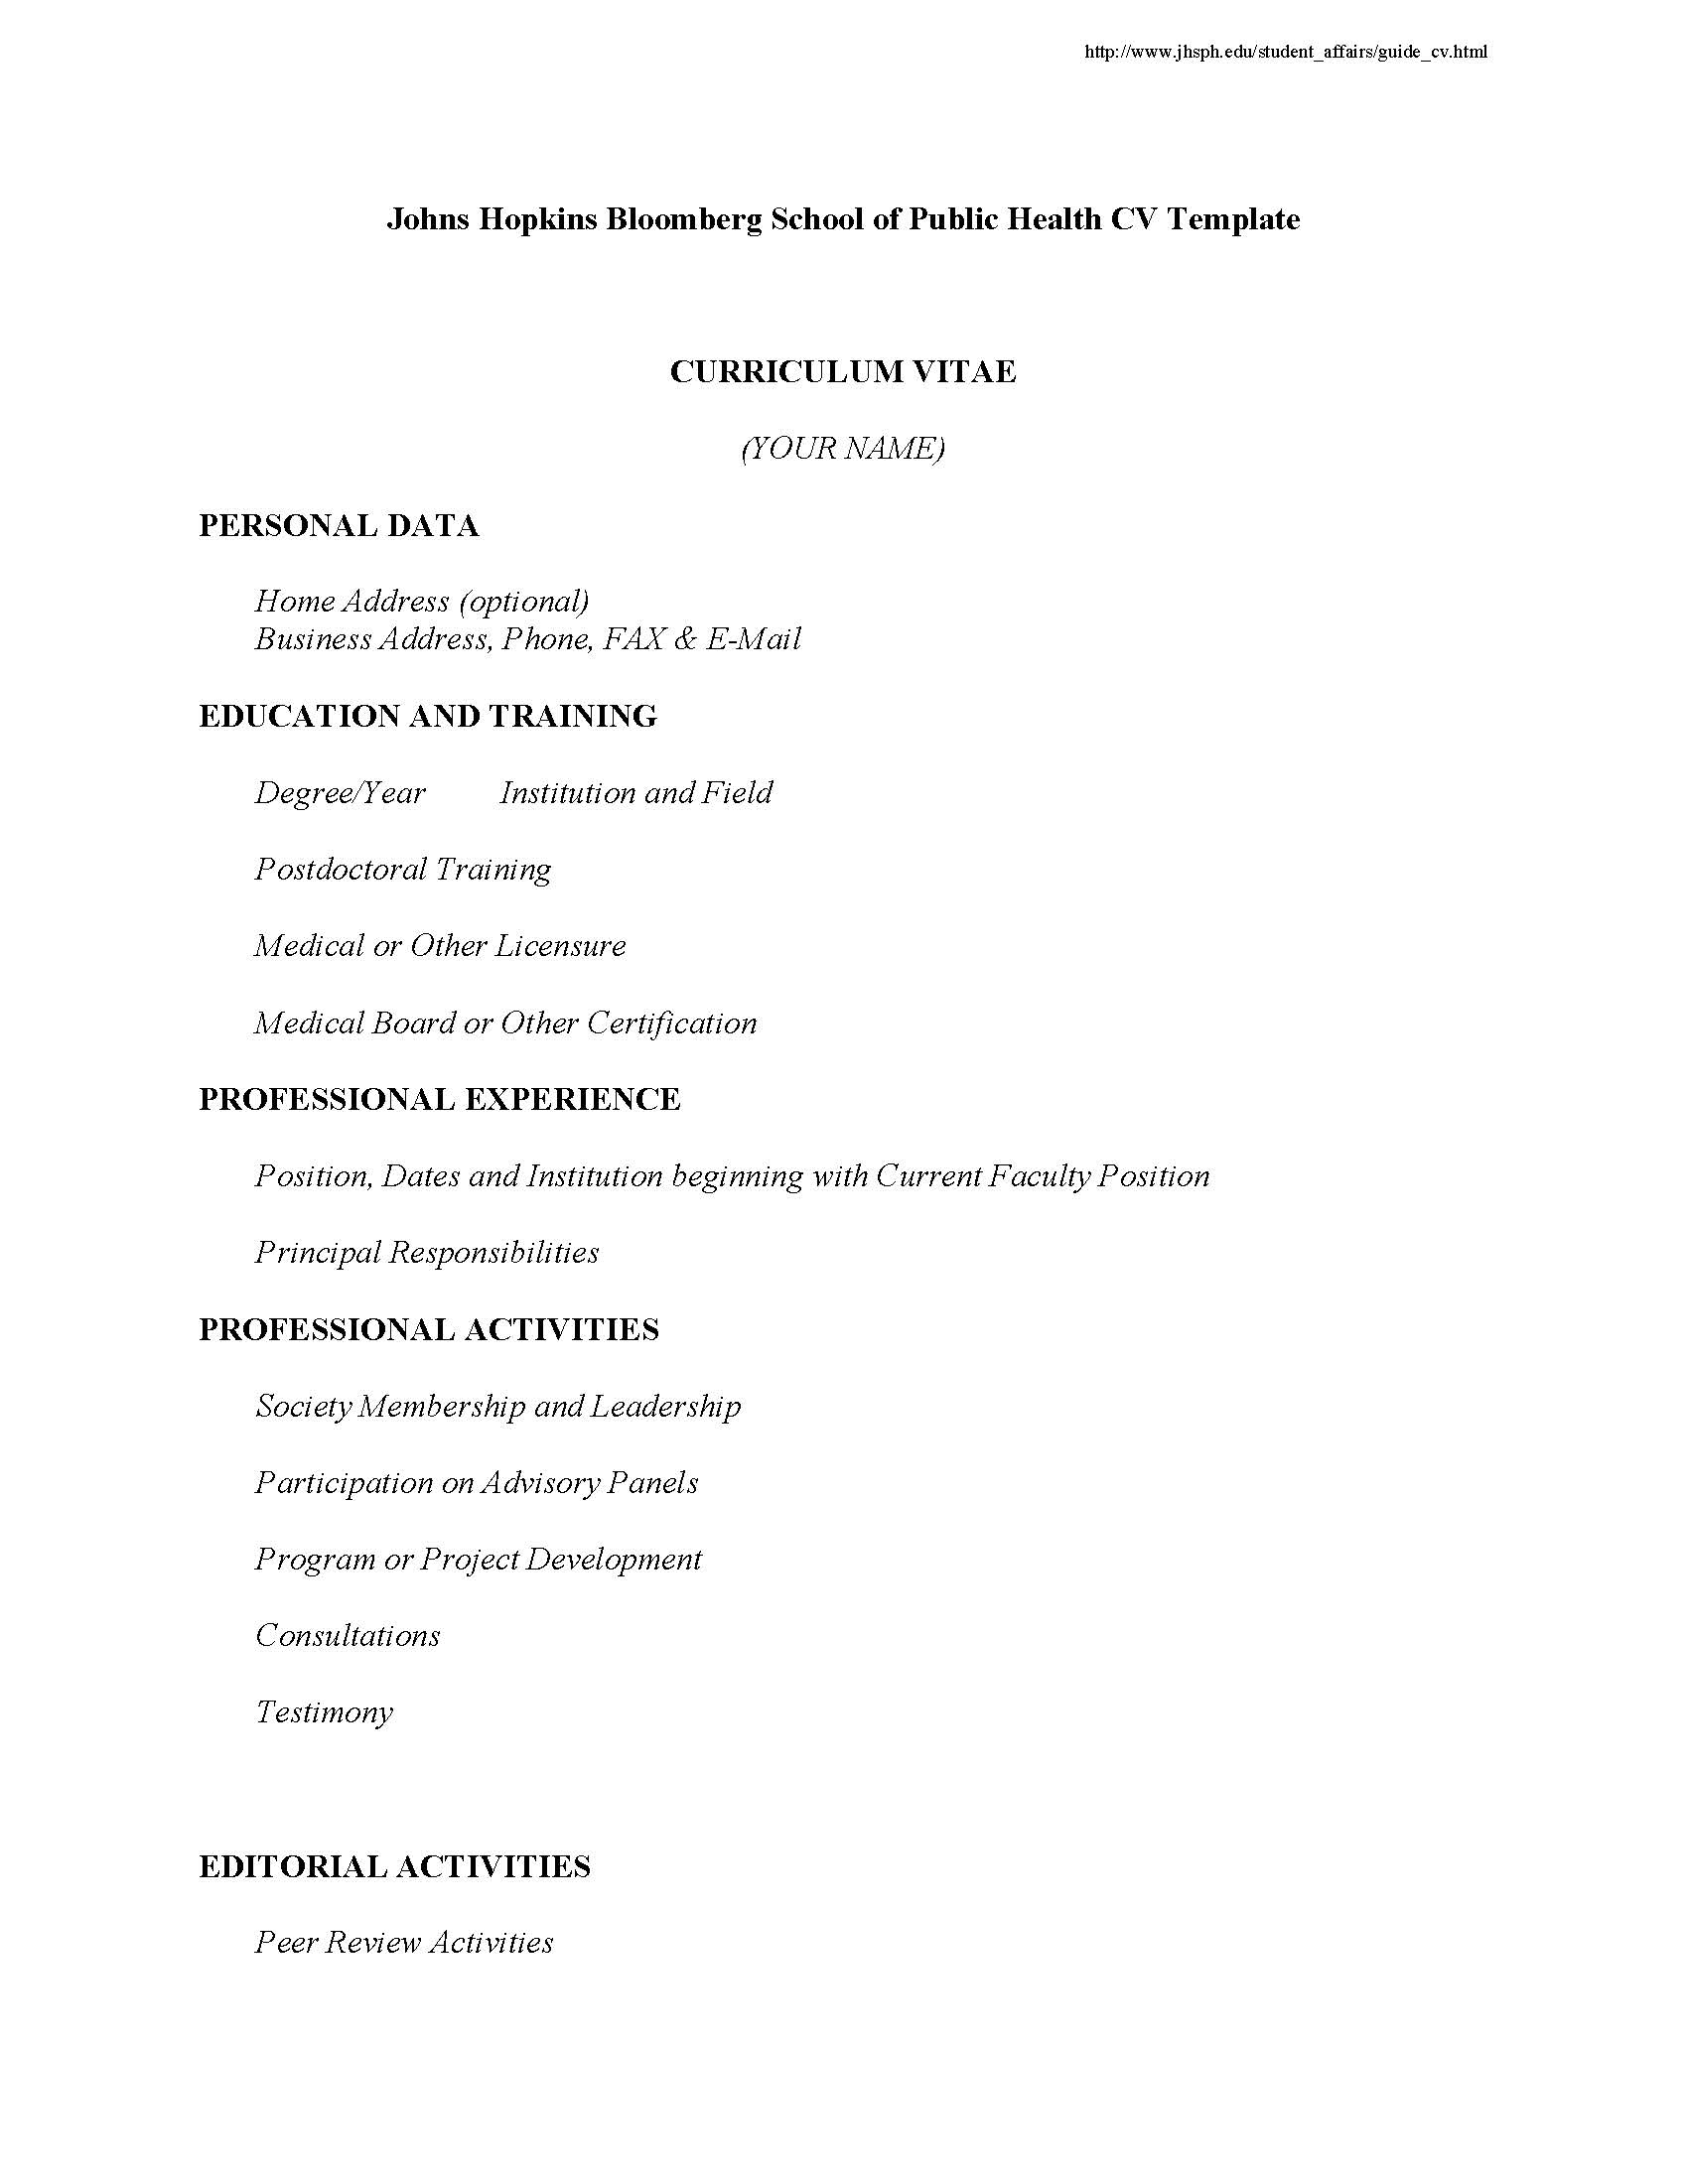 resumes and cvs career resources for students career cv template